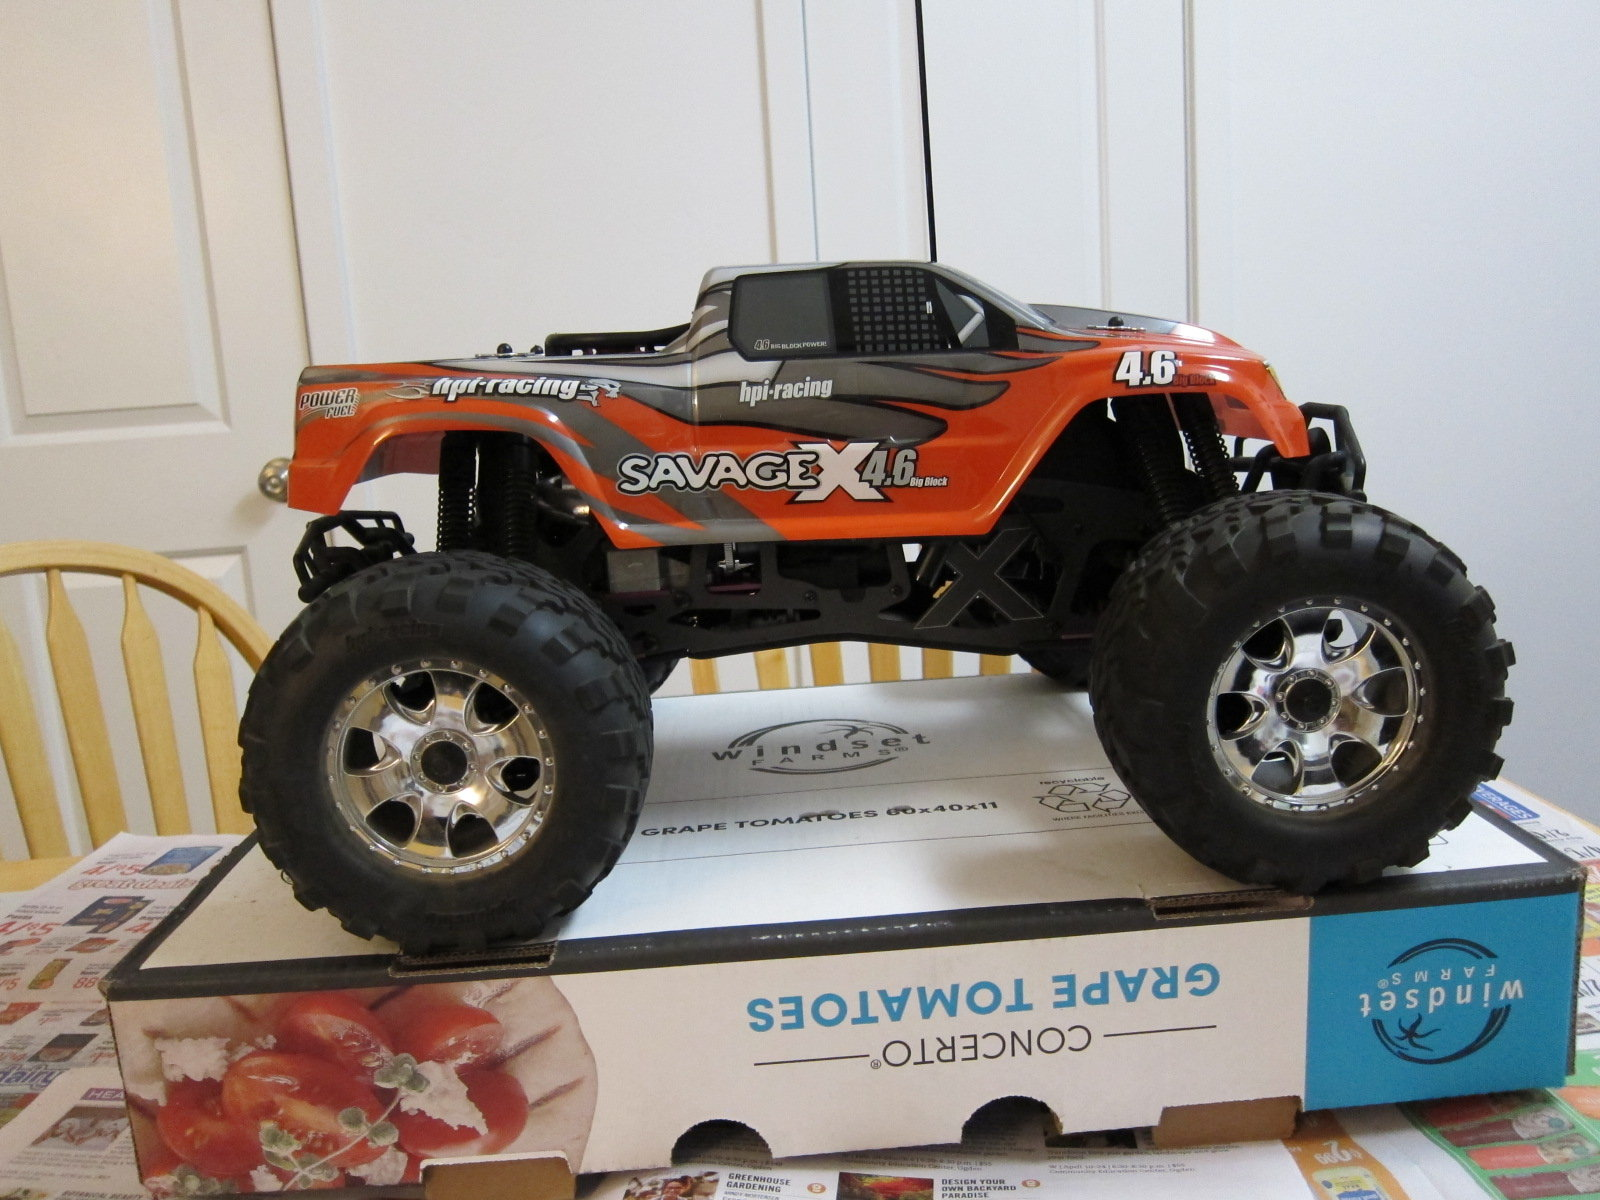 HPI Savage XL 4 6 RC nitro monster truck -like new - RCU Forums